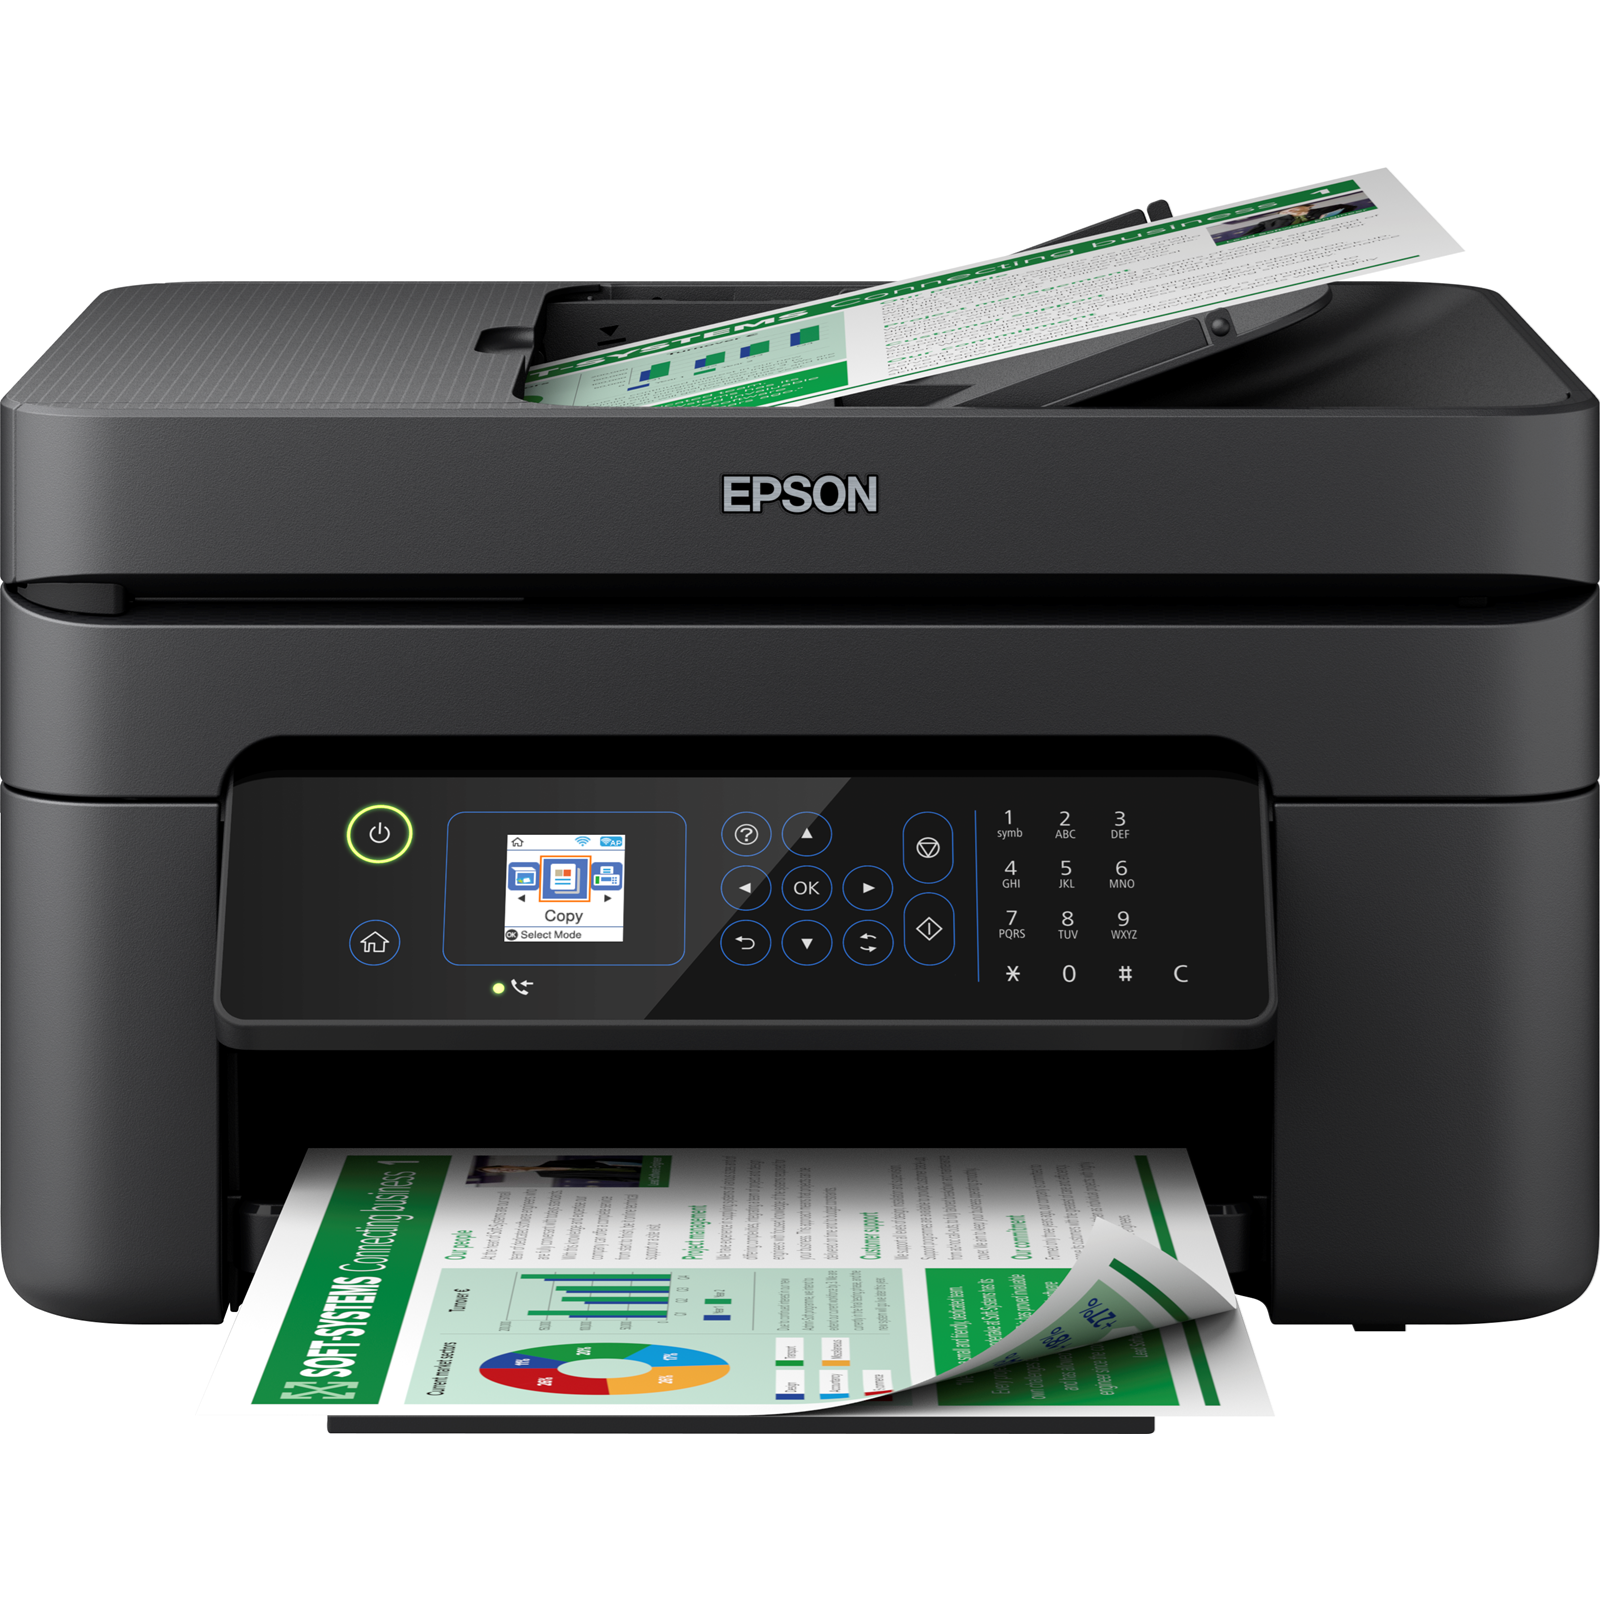 Epson WorkForce WF-2835DWF